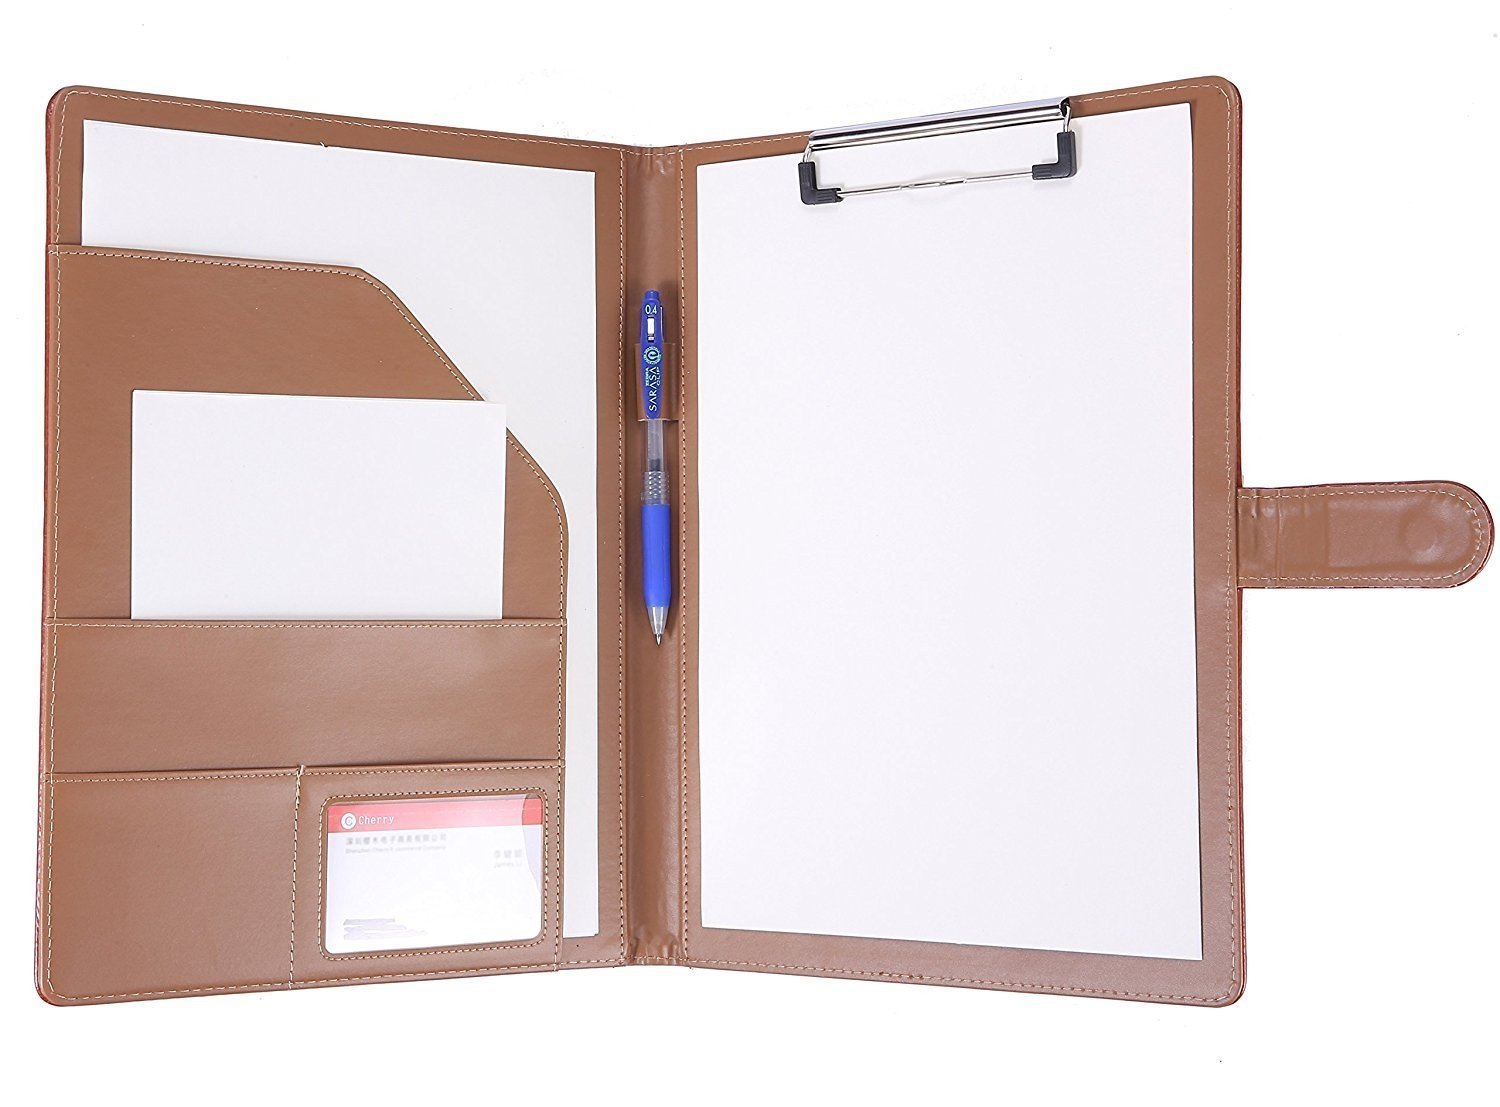 Padfolio Clipboard Folder File Folder With Pocket Faux Leather Clipboard Storage For Letter Size A4 Wring Pad for Business School Office Conference Black